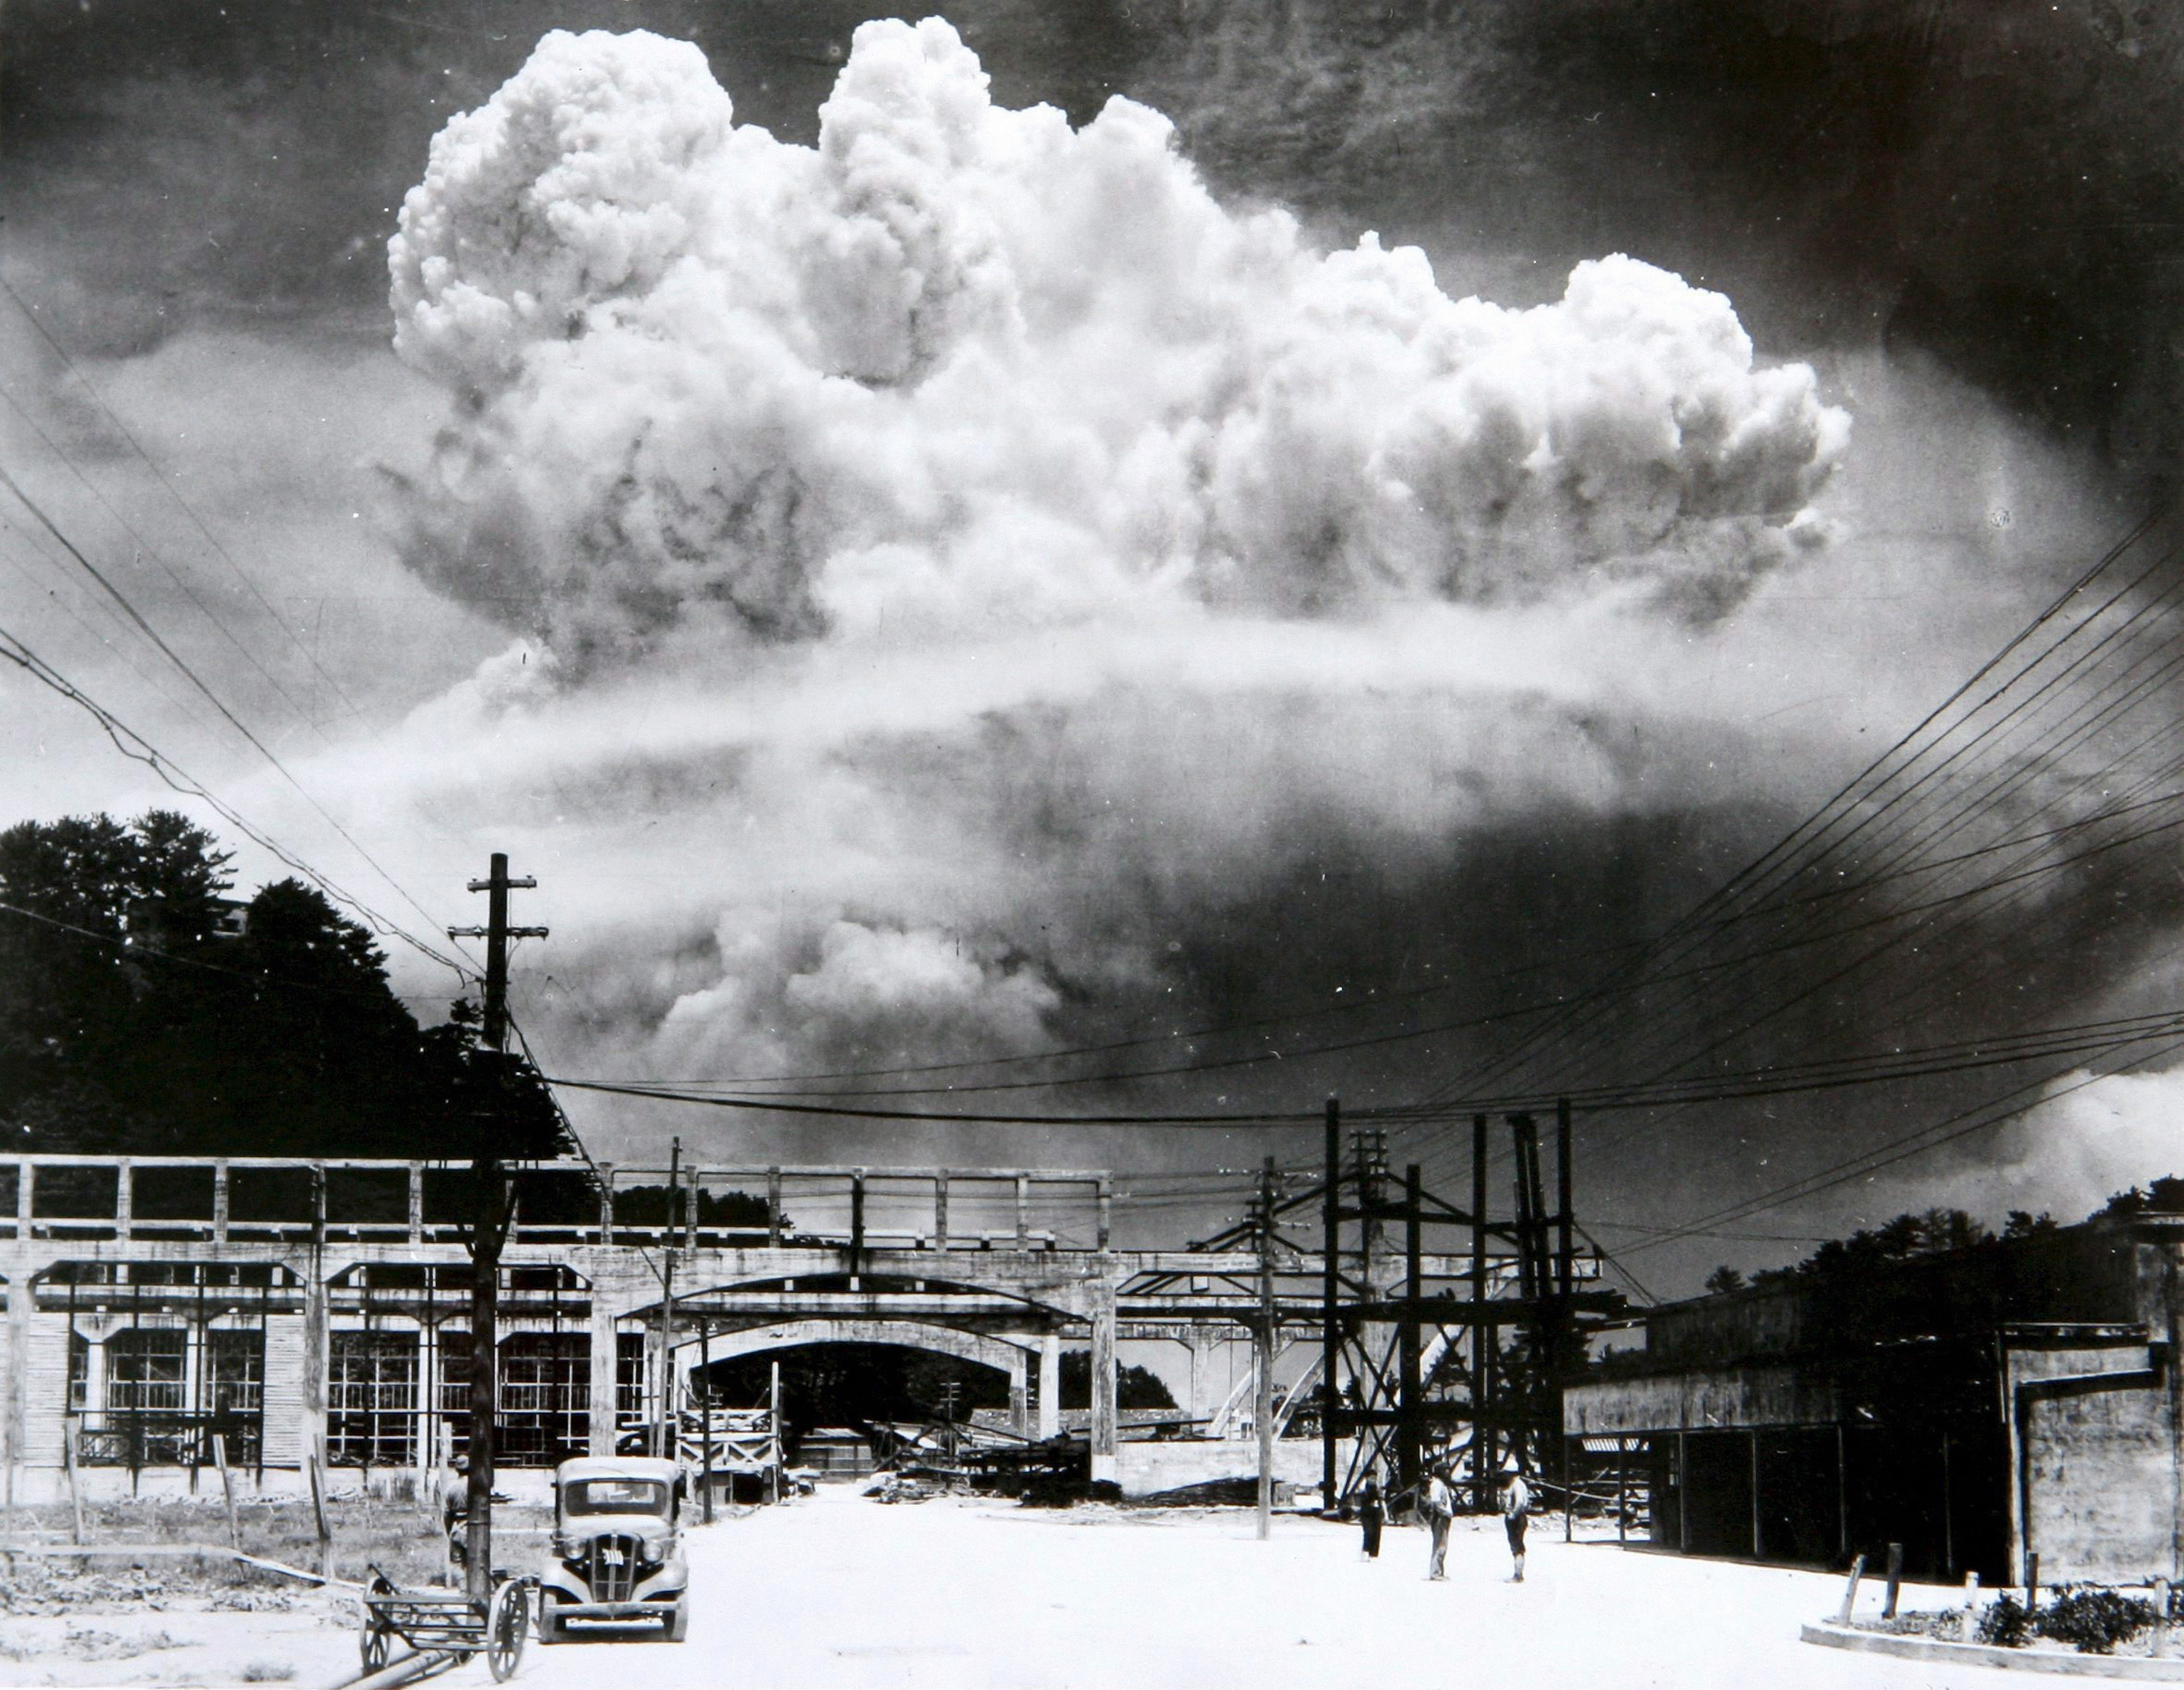 A gigantic atomic mushroom cloud explodes over a bridge and railway station